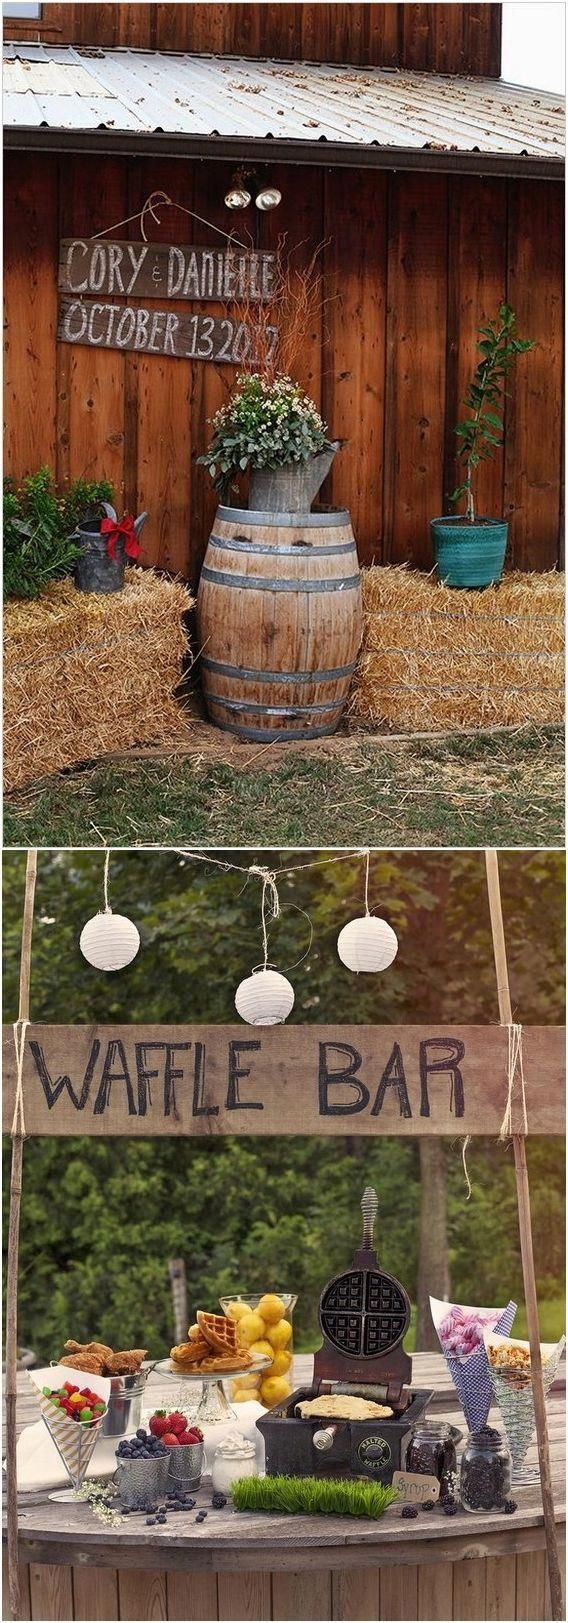 Wedding decorations themes ideas october 2018 Pin by Selinaus Rustic Chic Wedding Ideas on Rustic Wedding